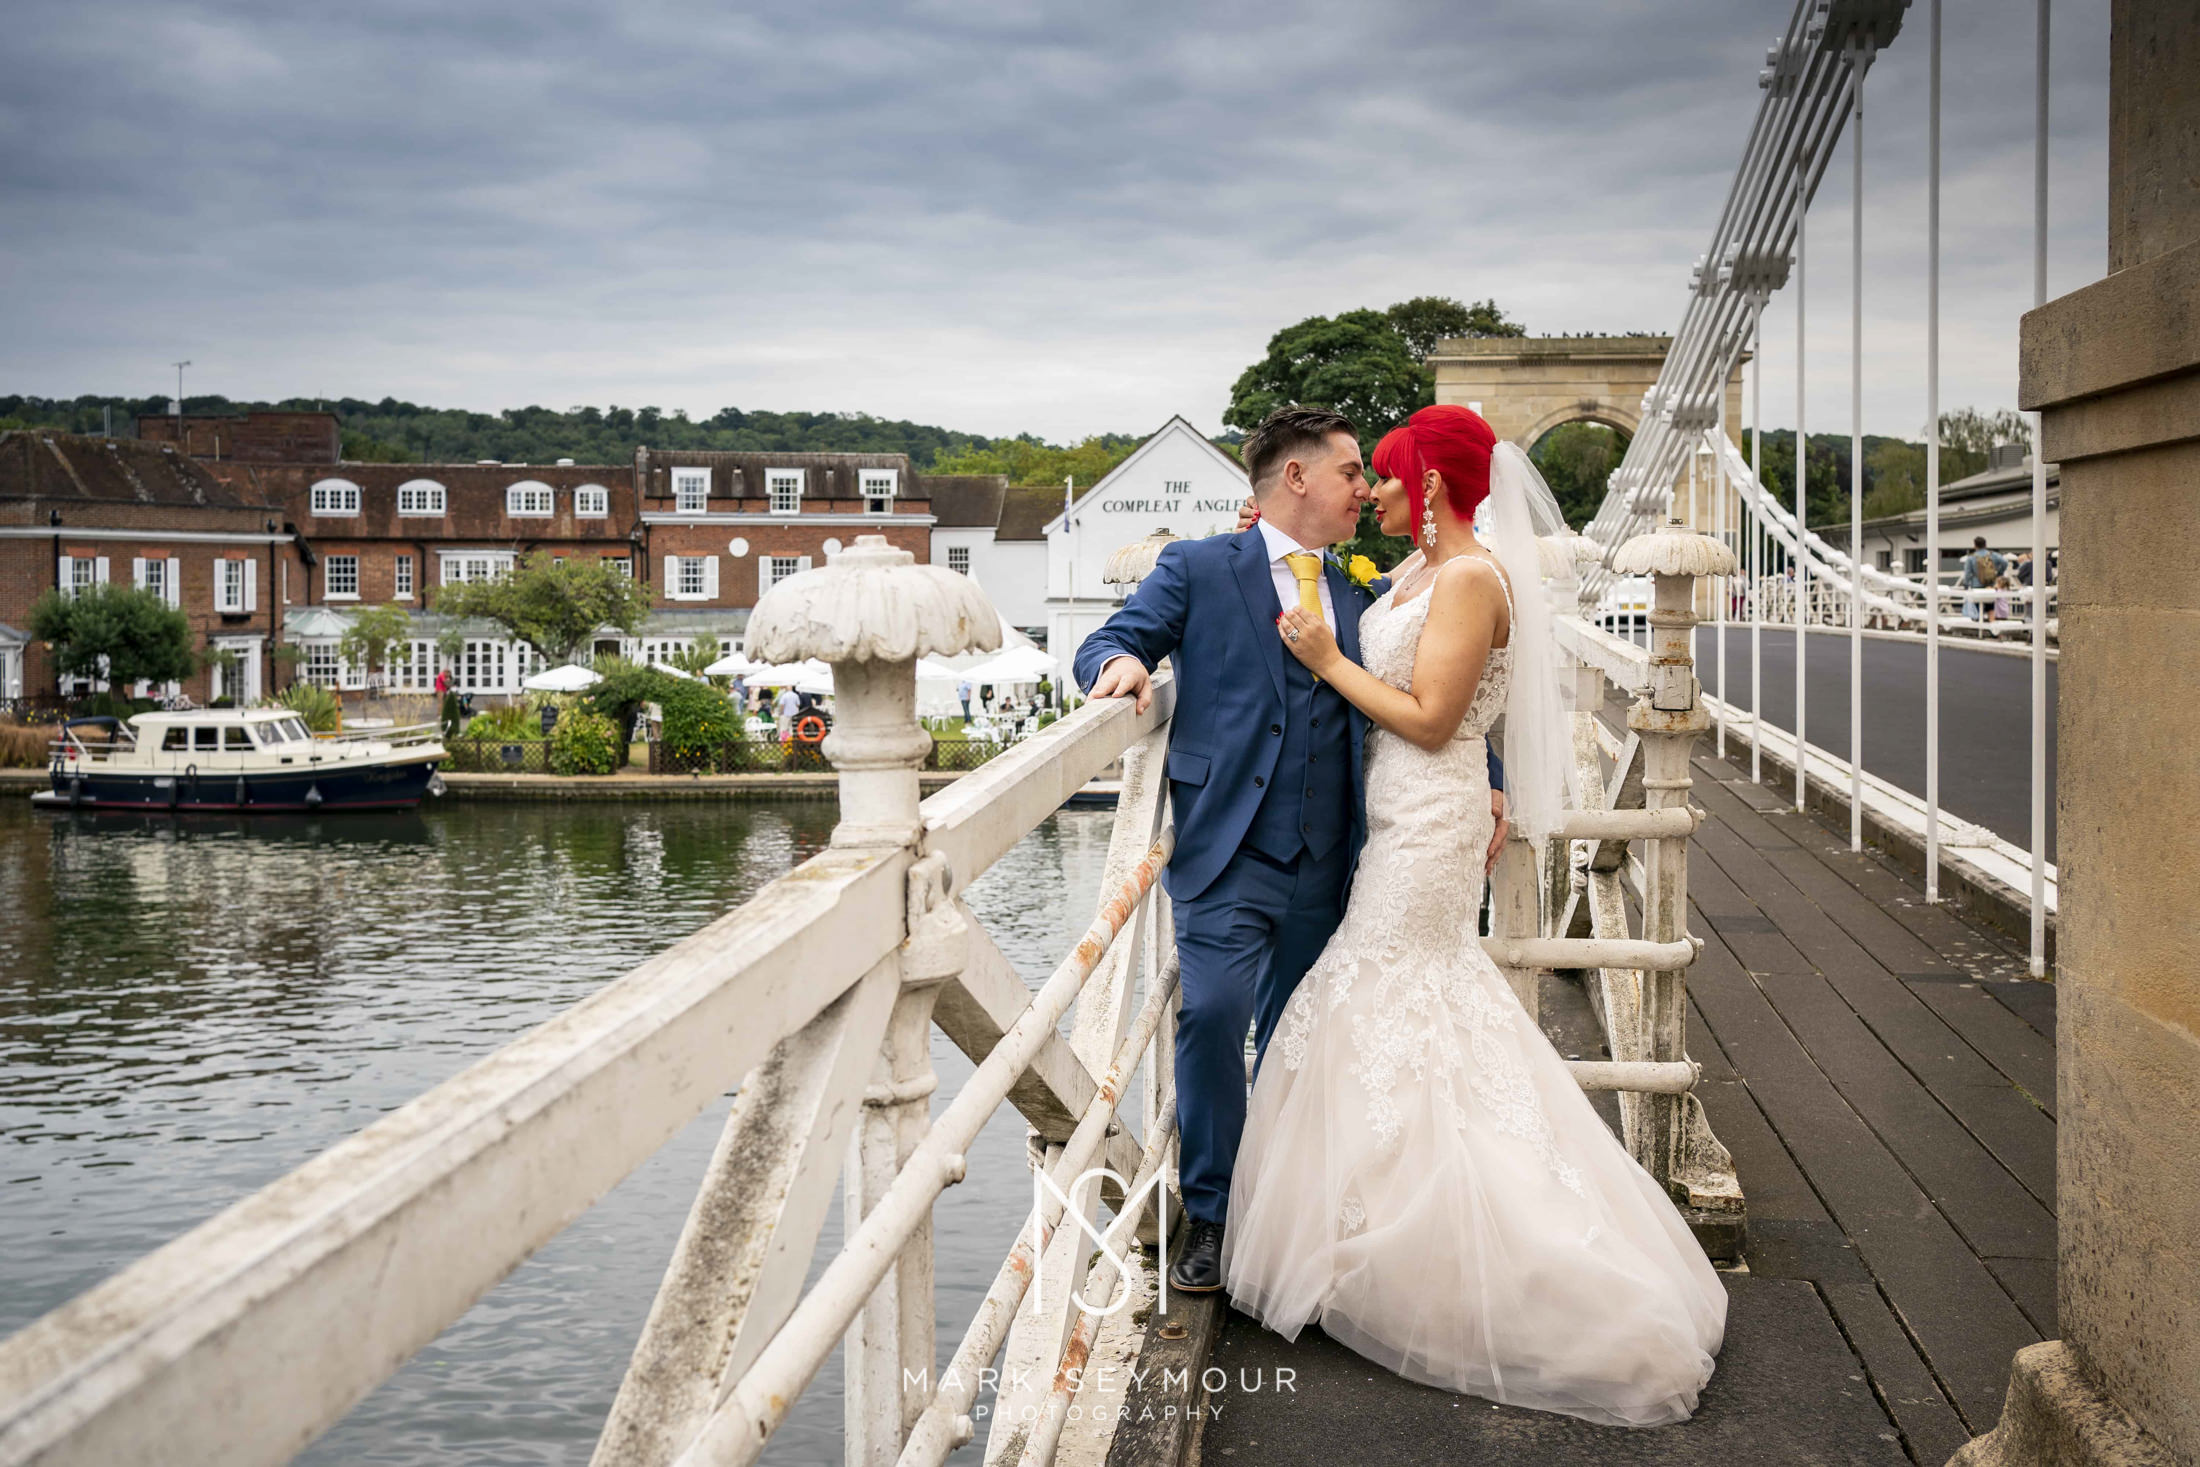 Compleat Angler Wedding Photography 2